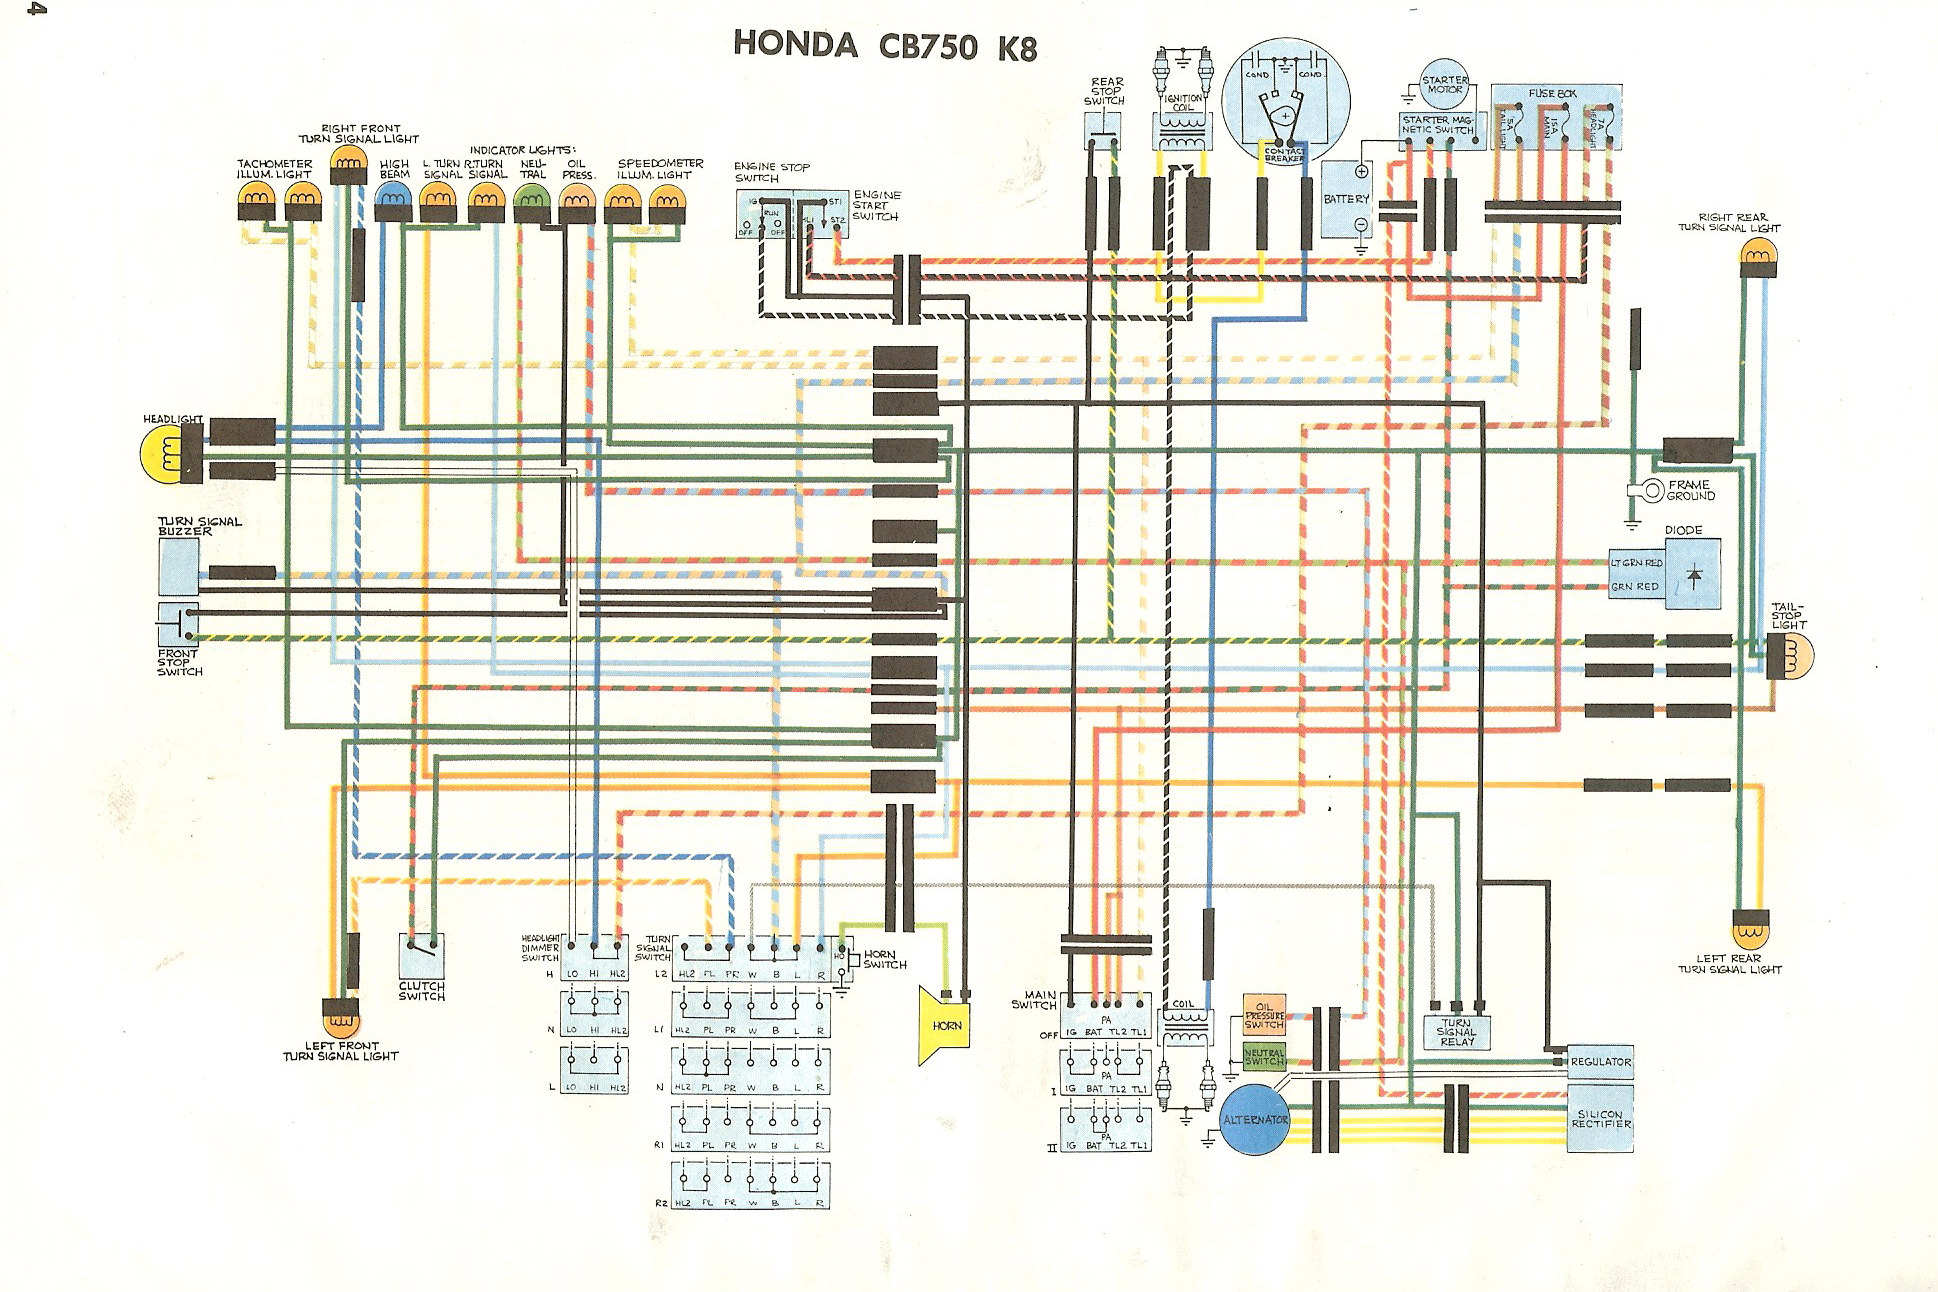 1978 honda odyssey wiring diagram cb750k manuals - cb 350 - 750 four ig